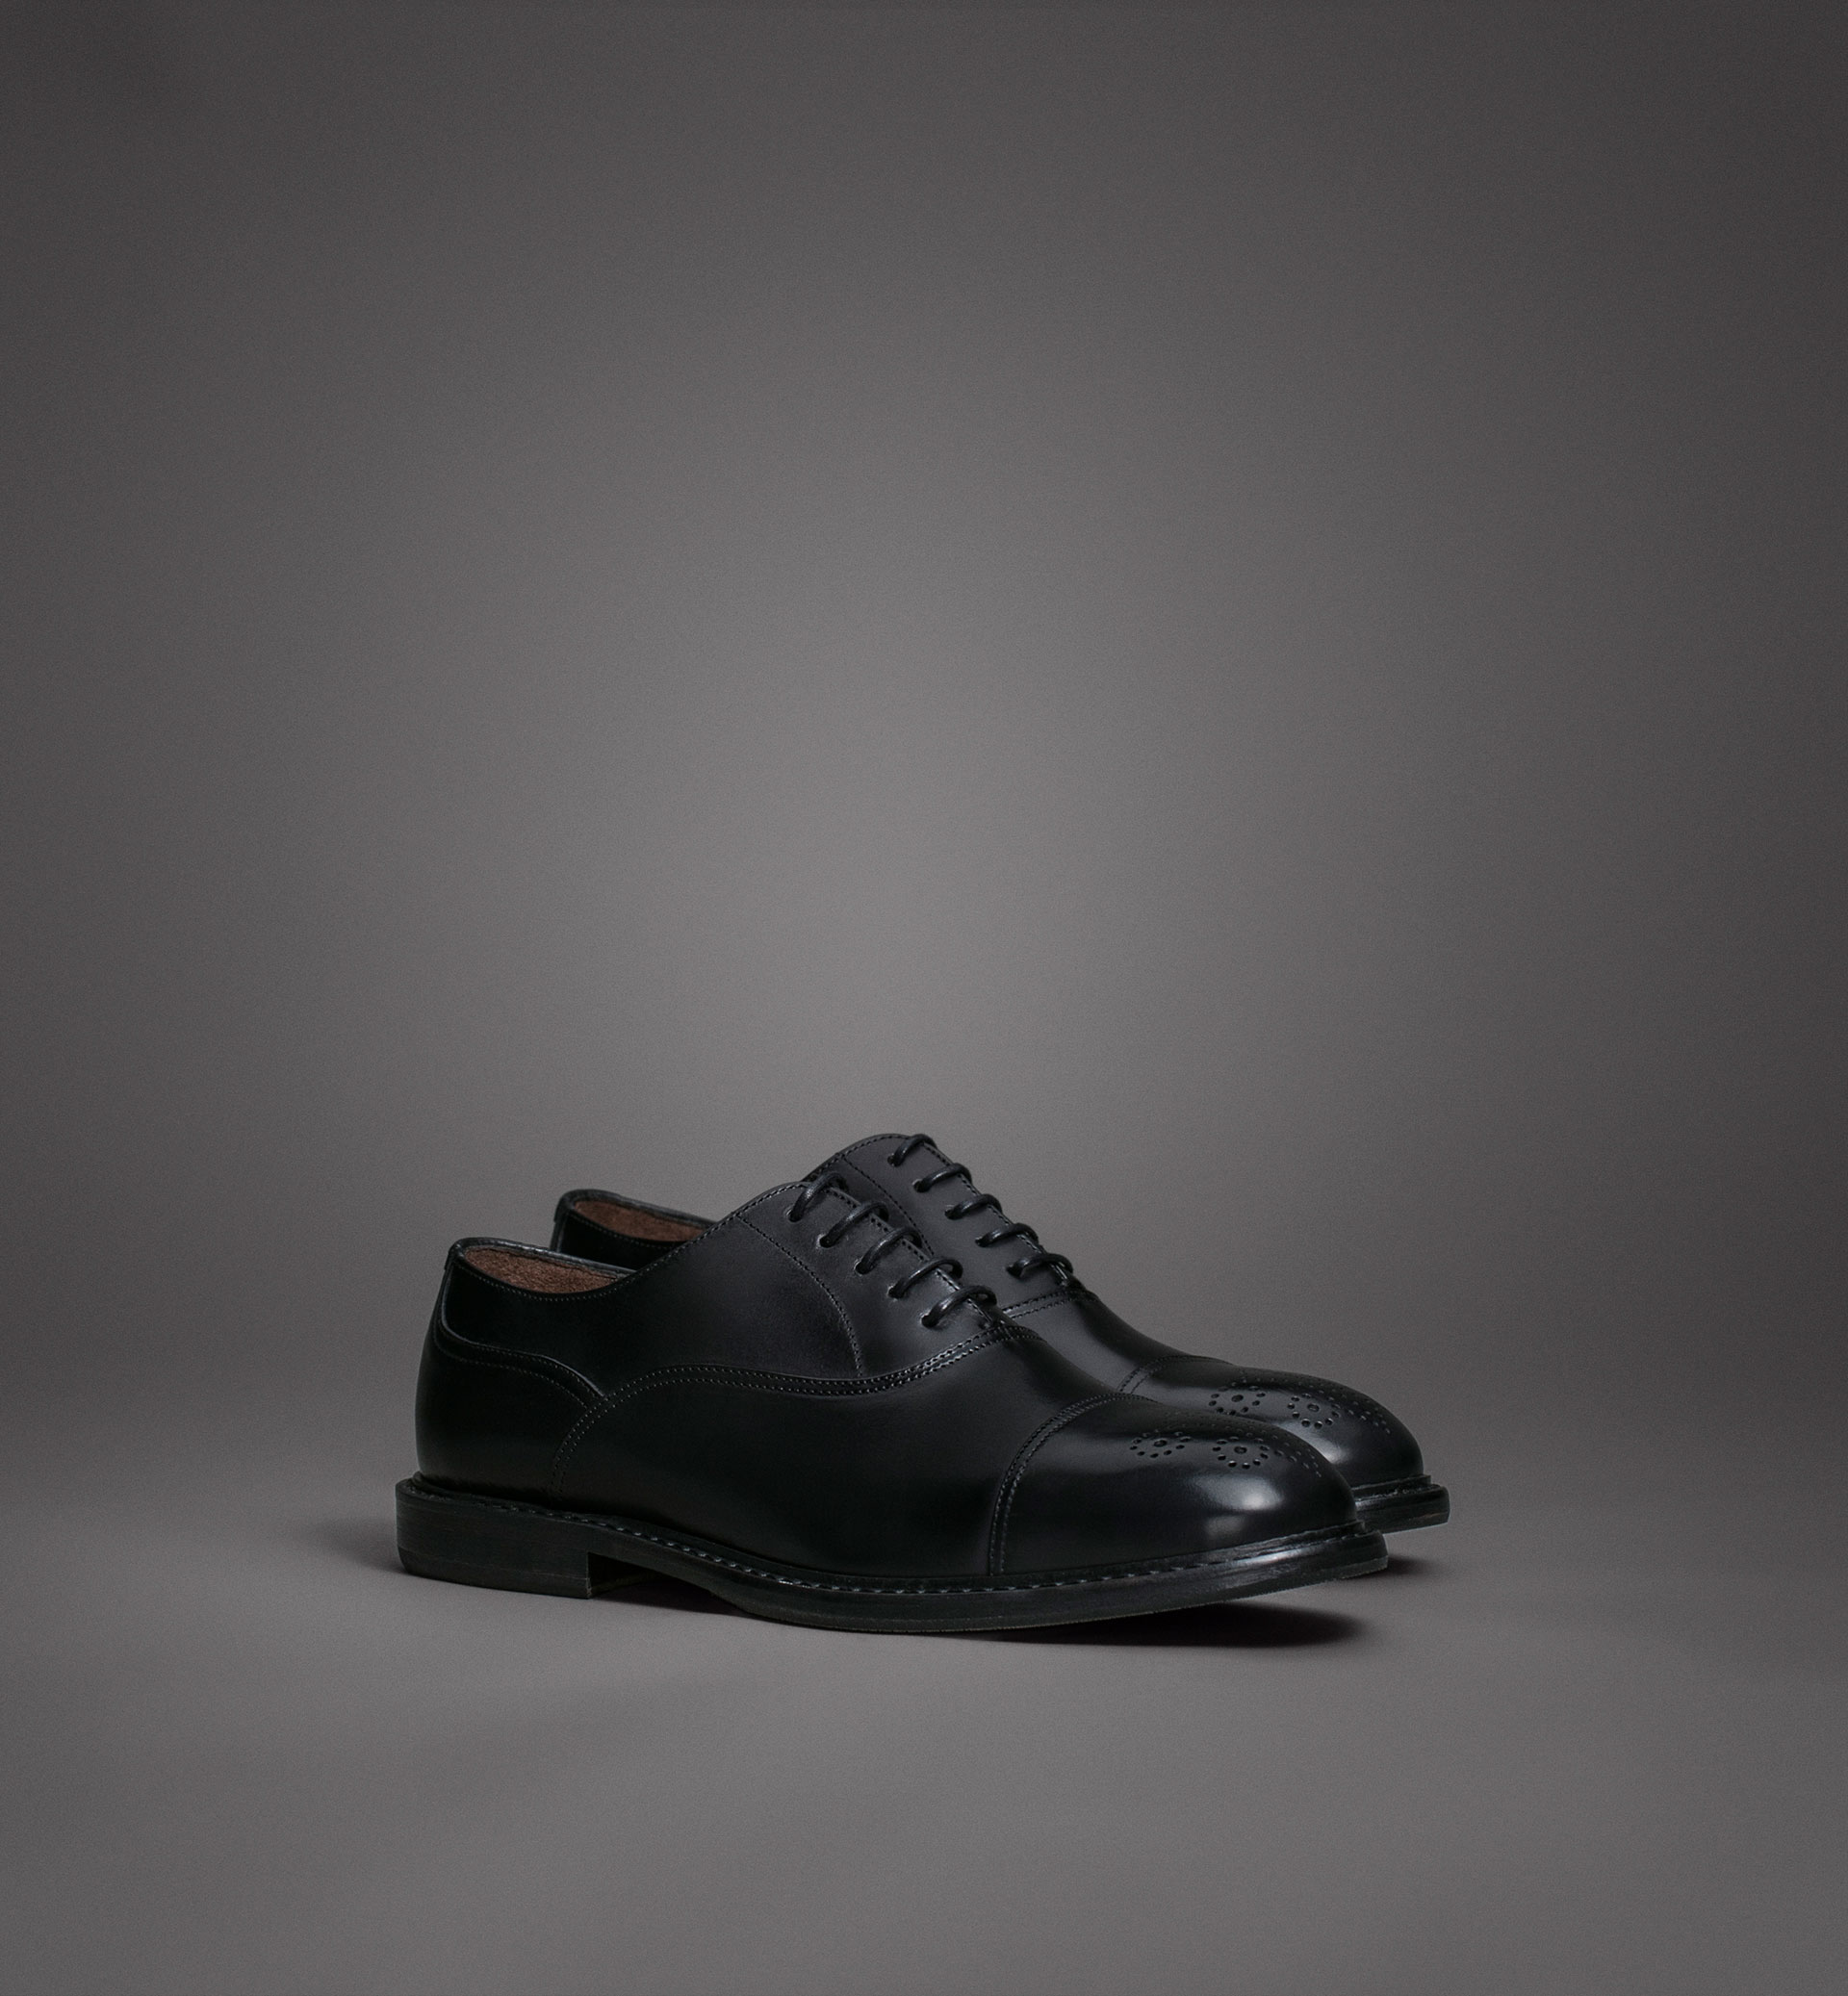 LIMITED EDITION BROGUE OXFORD SHOES